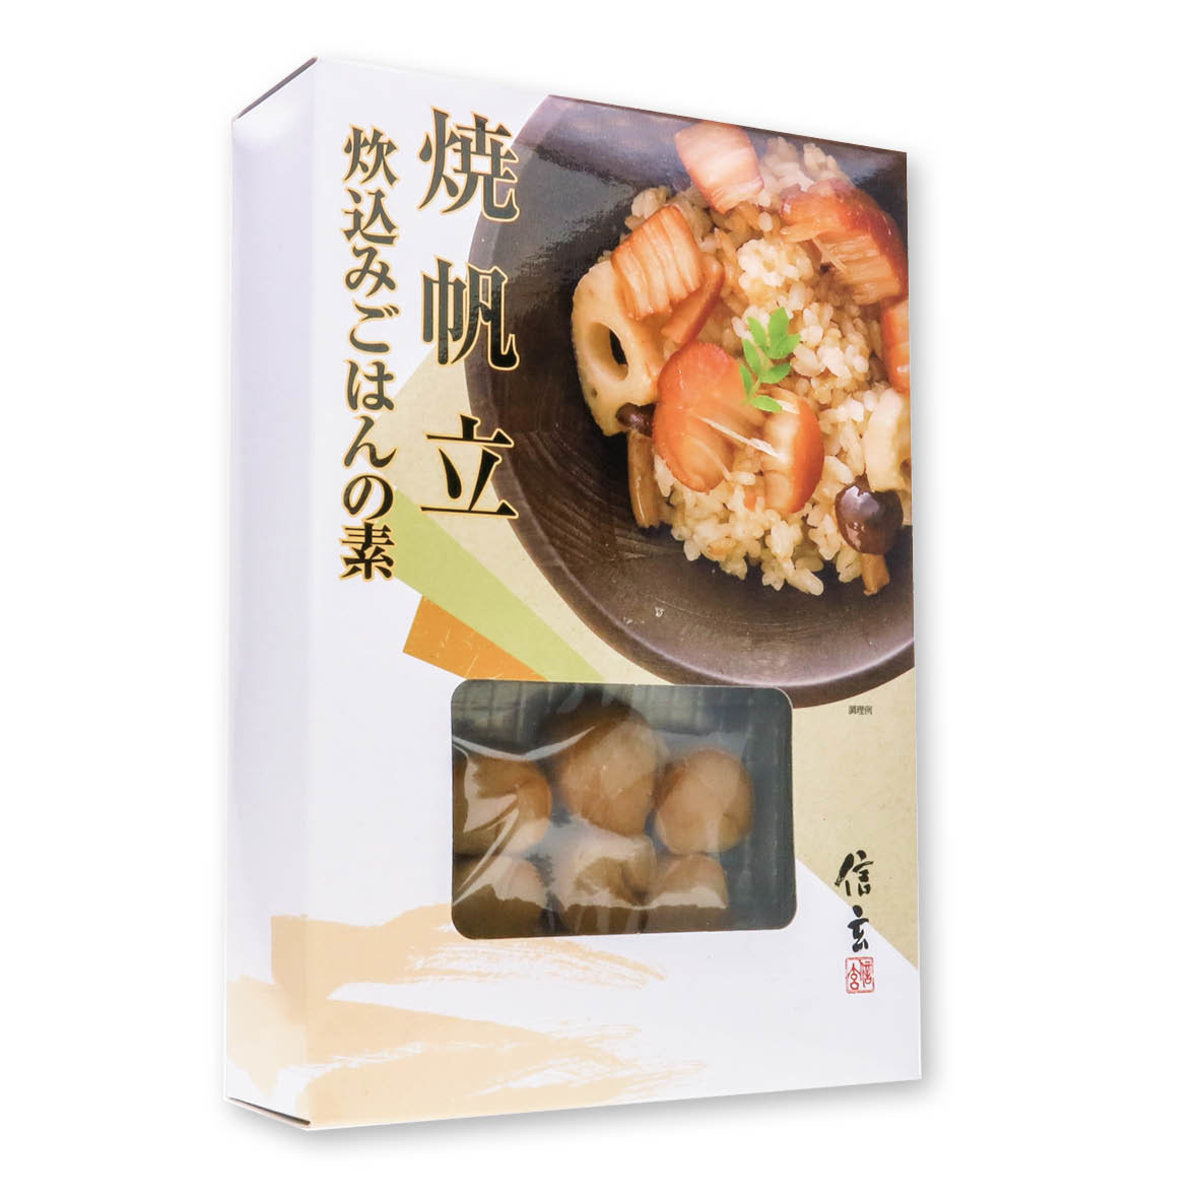 Hokkaido Scallop Rice Cooking Ingredient (2 Persons)